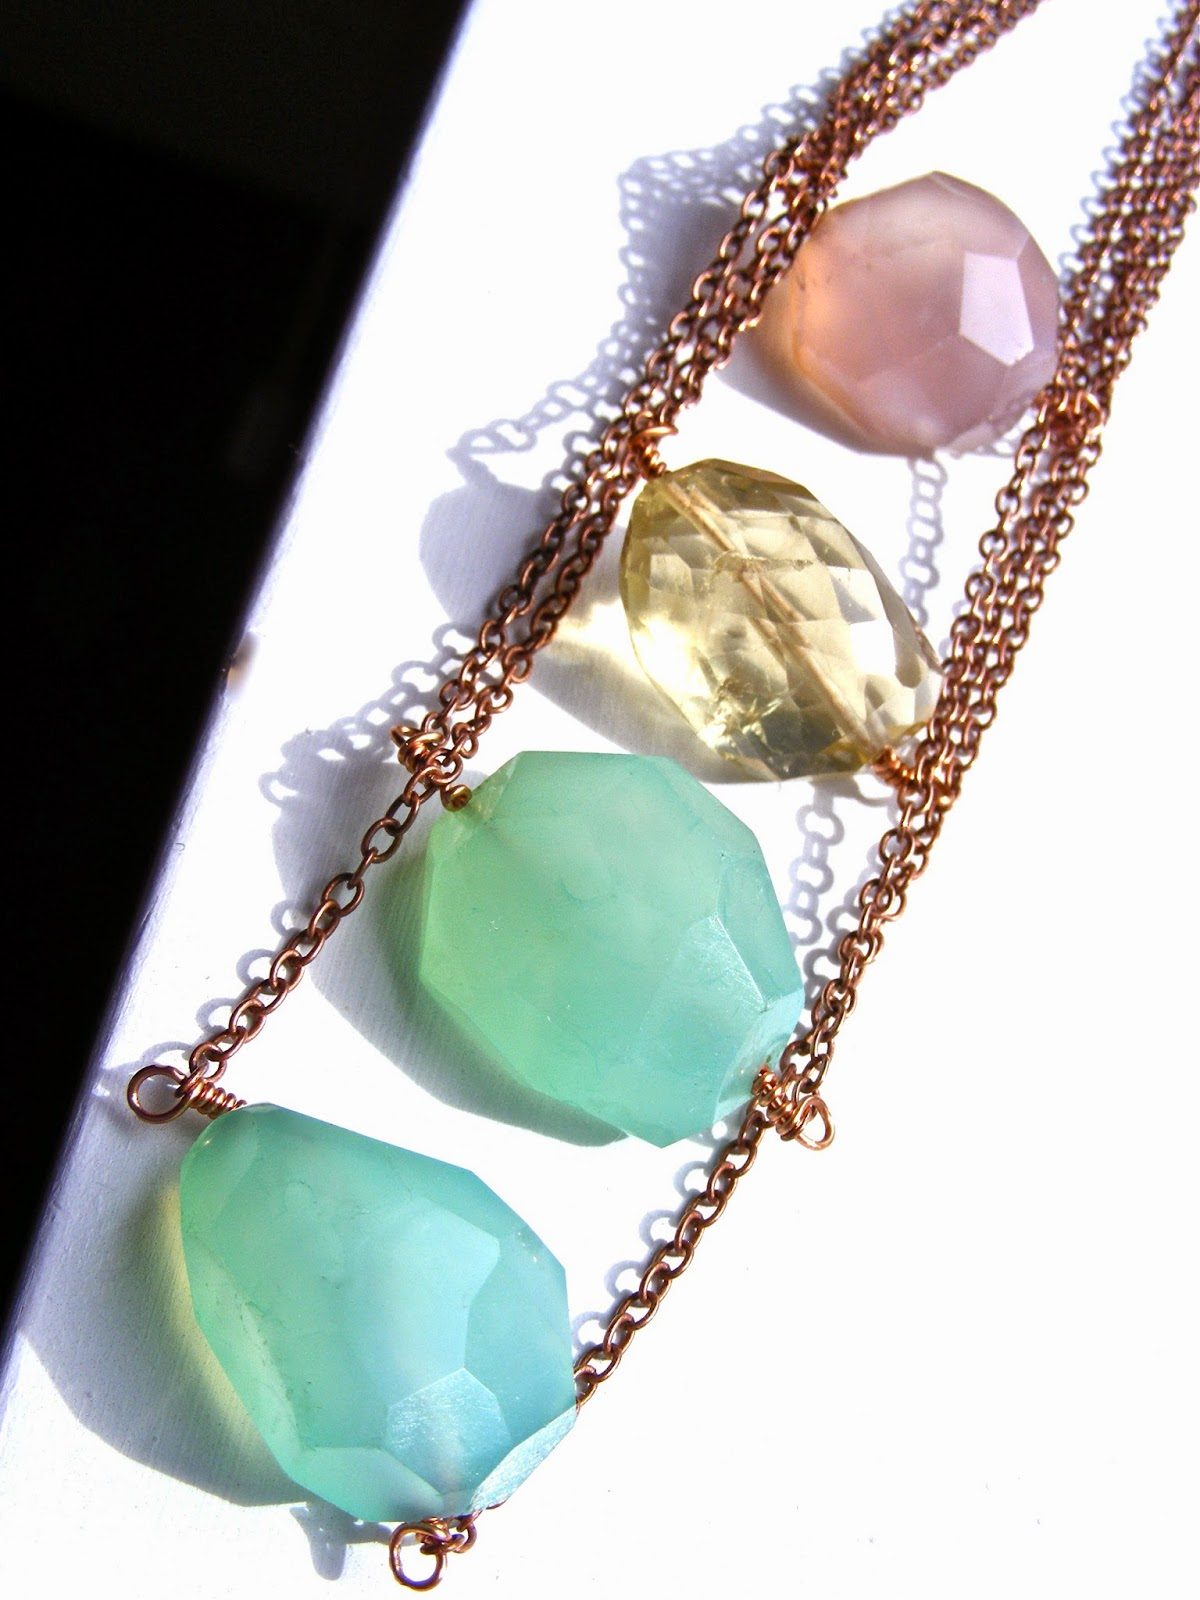 https://www.etsy.com/listing/225144392/spring-water-sea-blue-chalcedony-copper?ref=shop_home_active_2